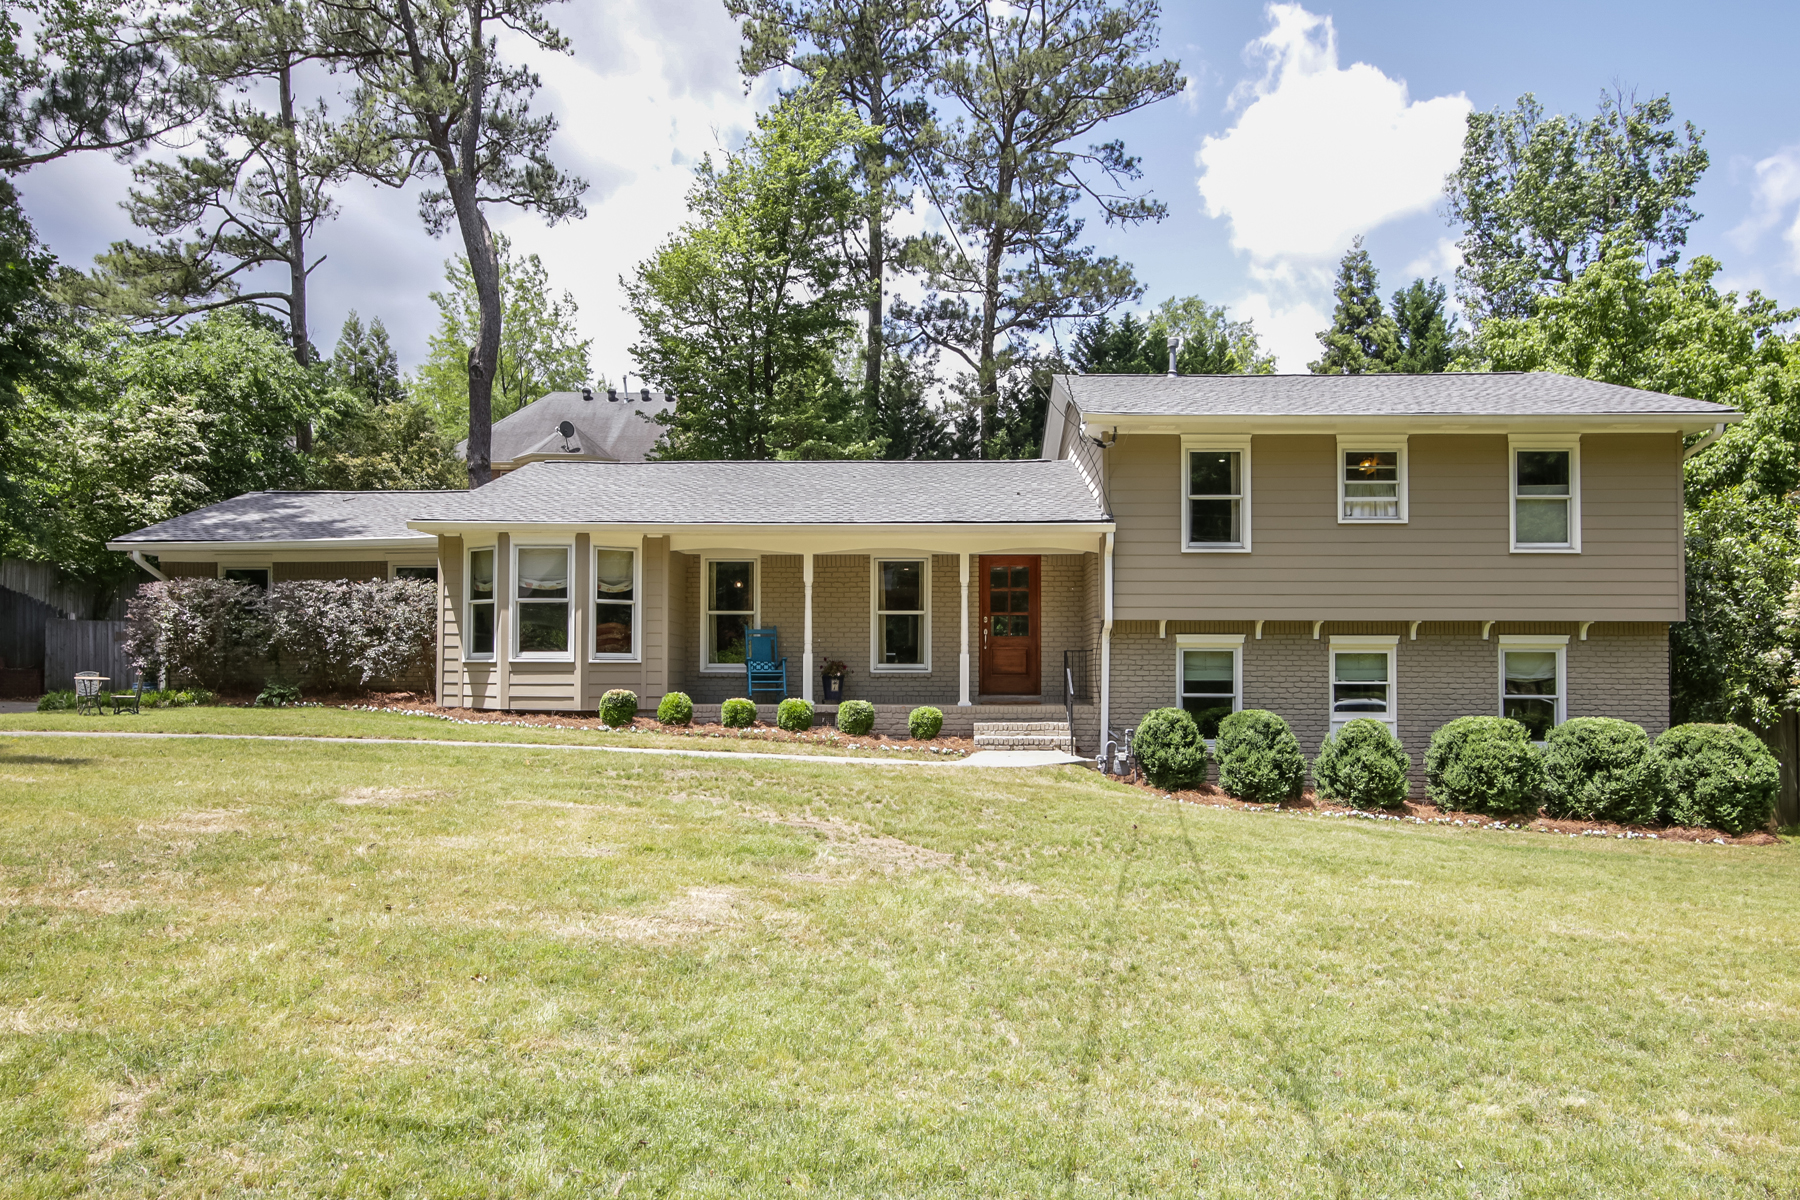 Single Family Home for Sale at Beautiful Renovation In One Of Atlanta's Best School Districts 3090 Roberta Drive NW Atlanta, Georgia, 30327 United States